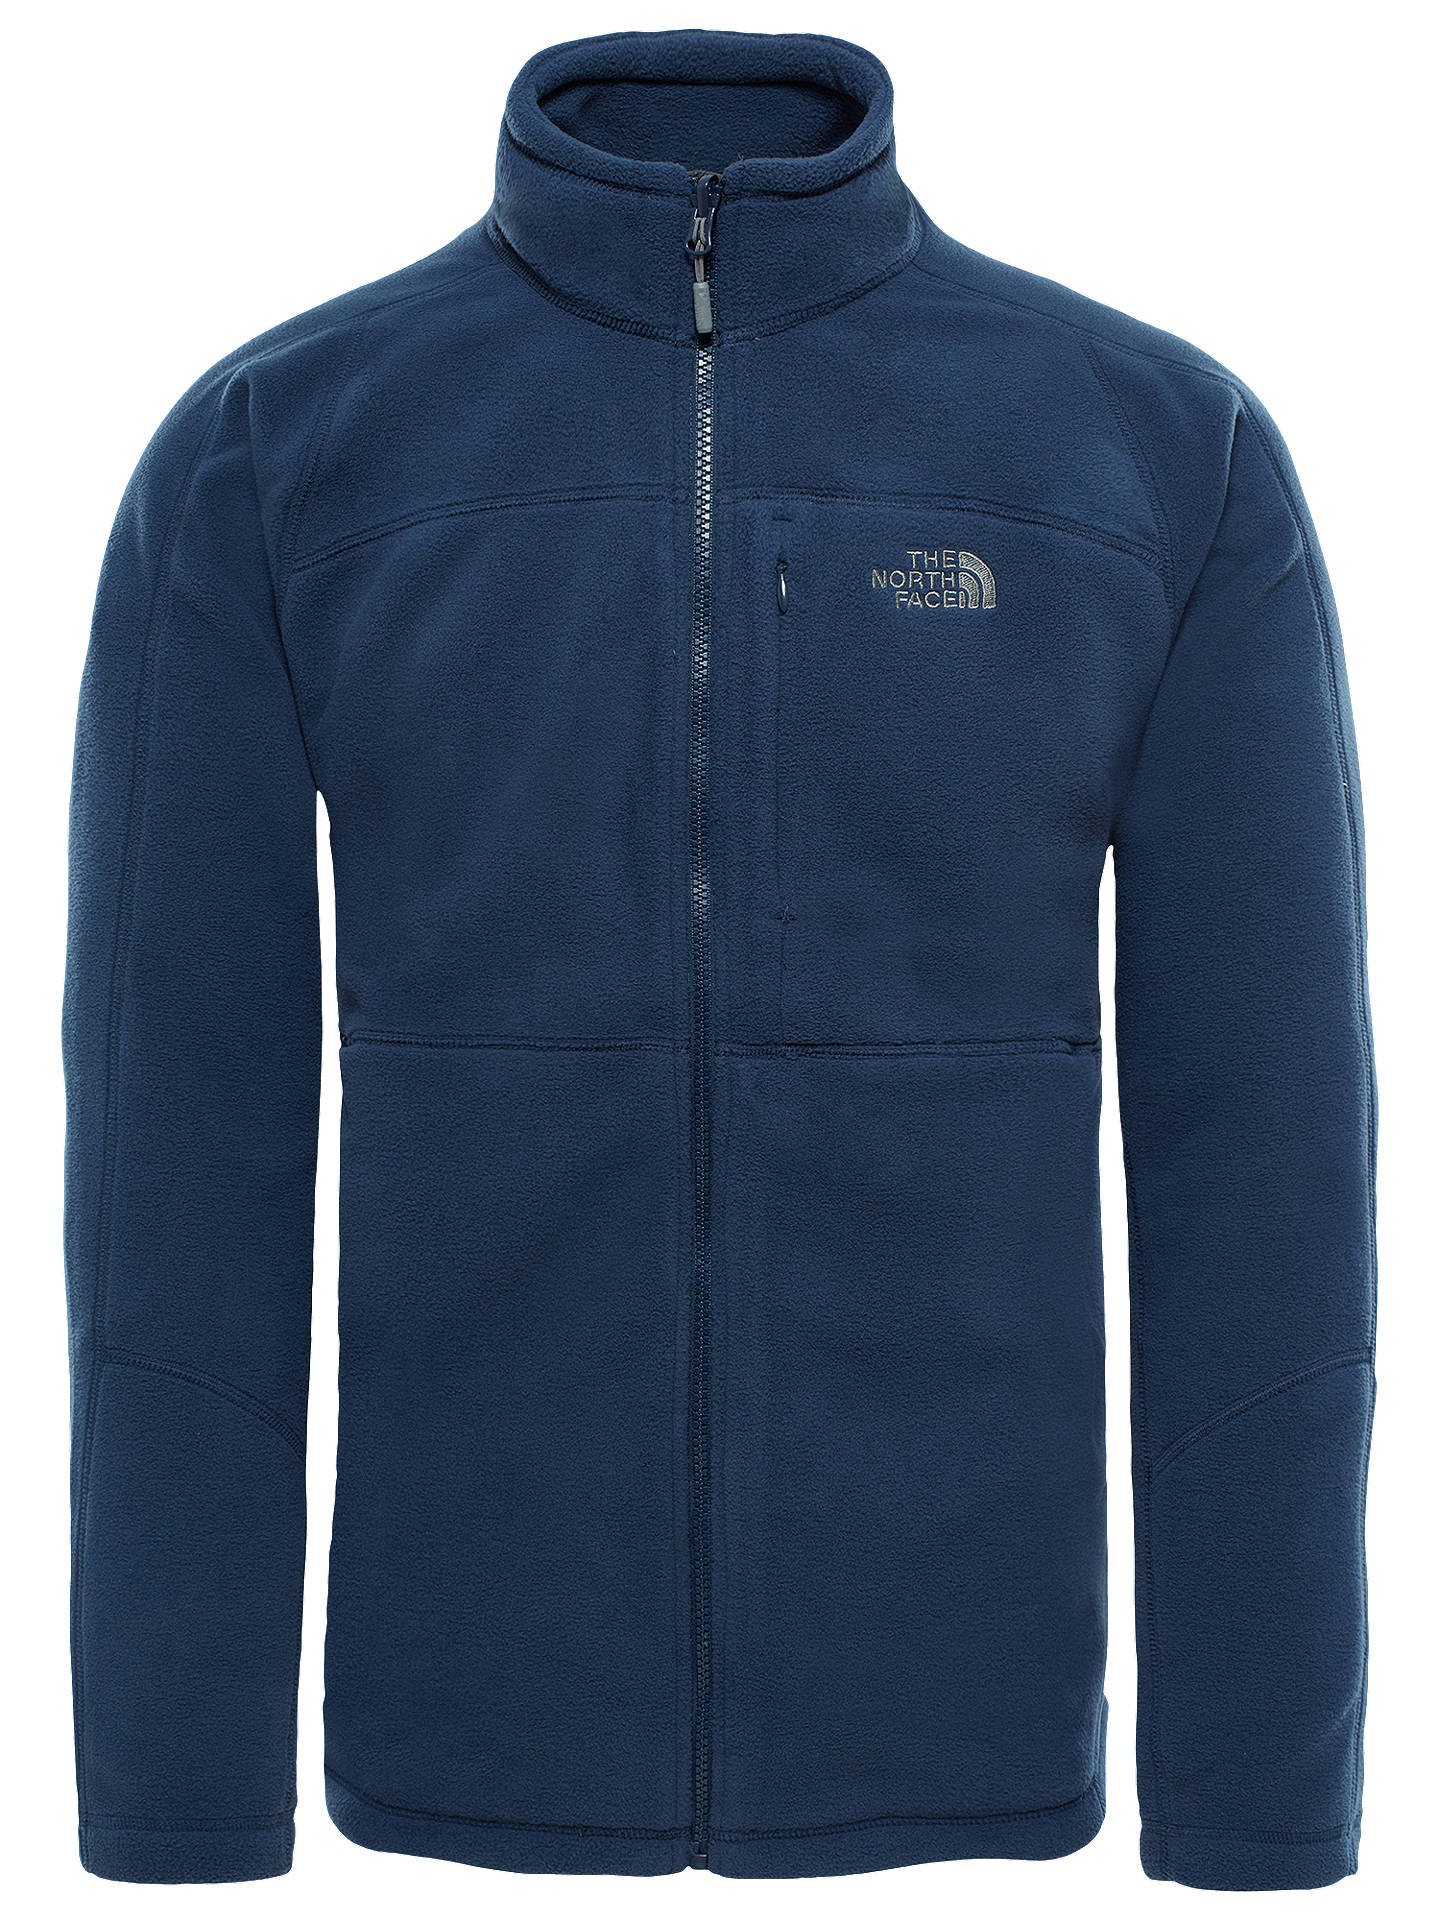 302b7fbe8 The North Face 200 Shadow Men's Fleece Jacket, Urban Navy at John ...